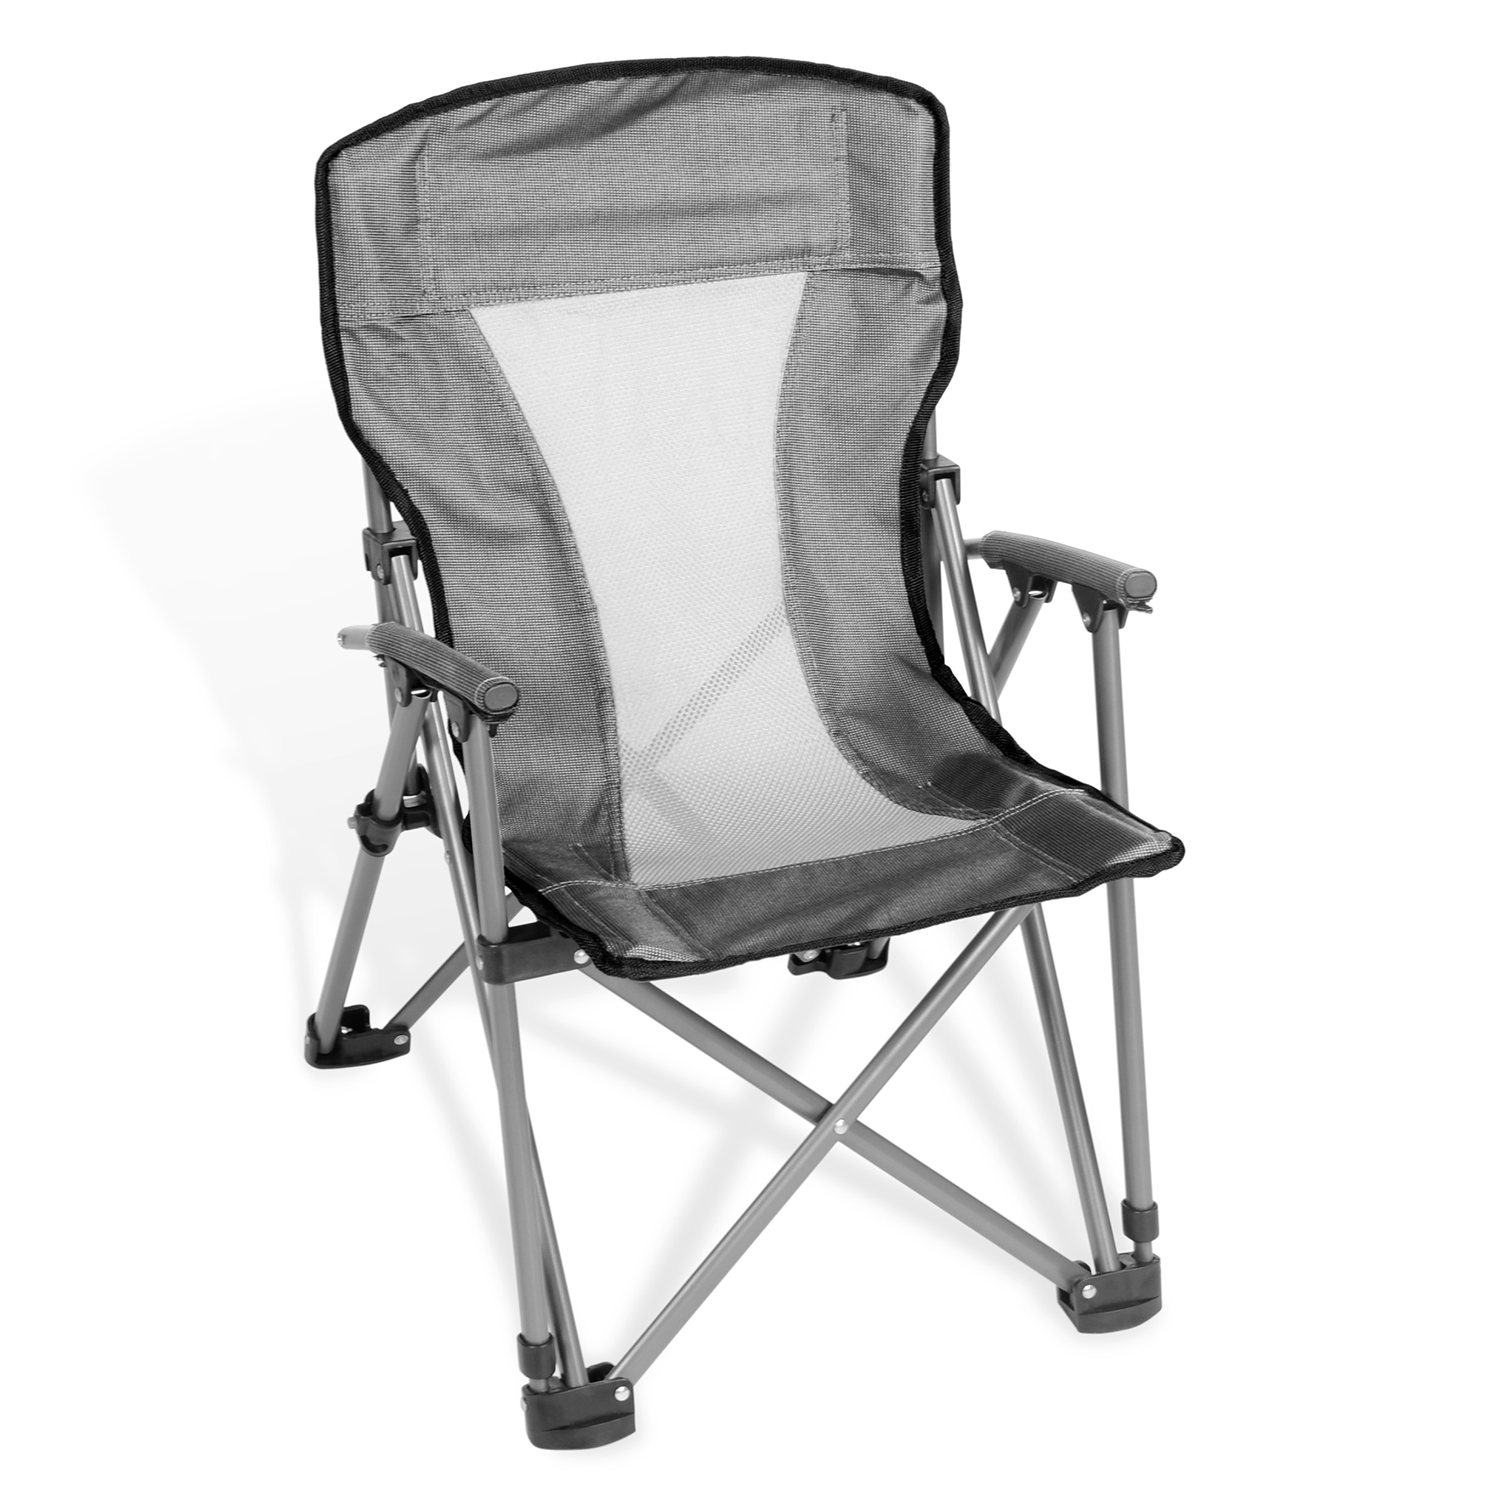 Kids Folding Arm Chair with Padded Arms and Backrest With Bag Heavy Duty